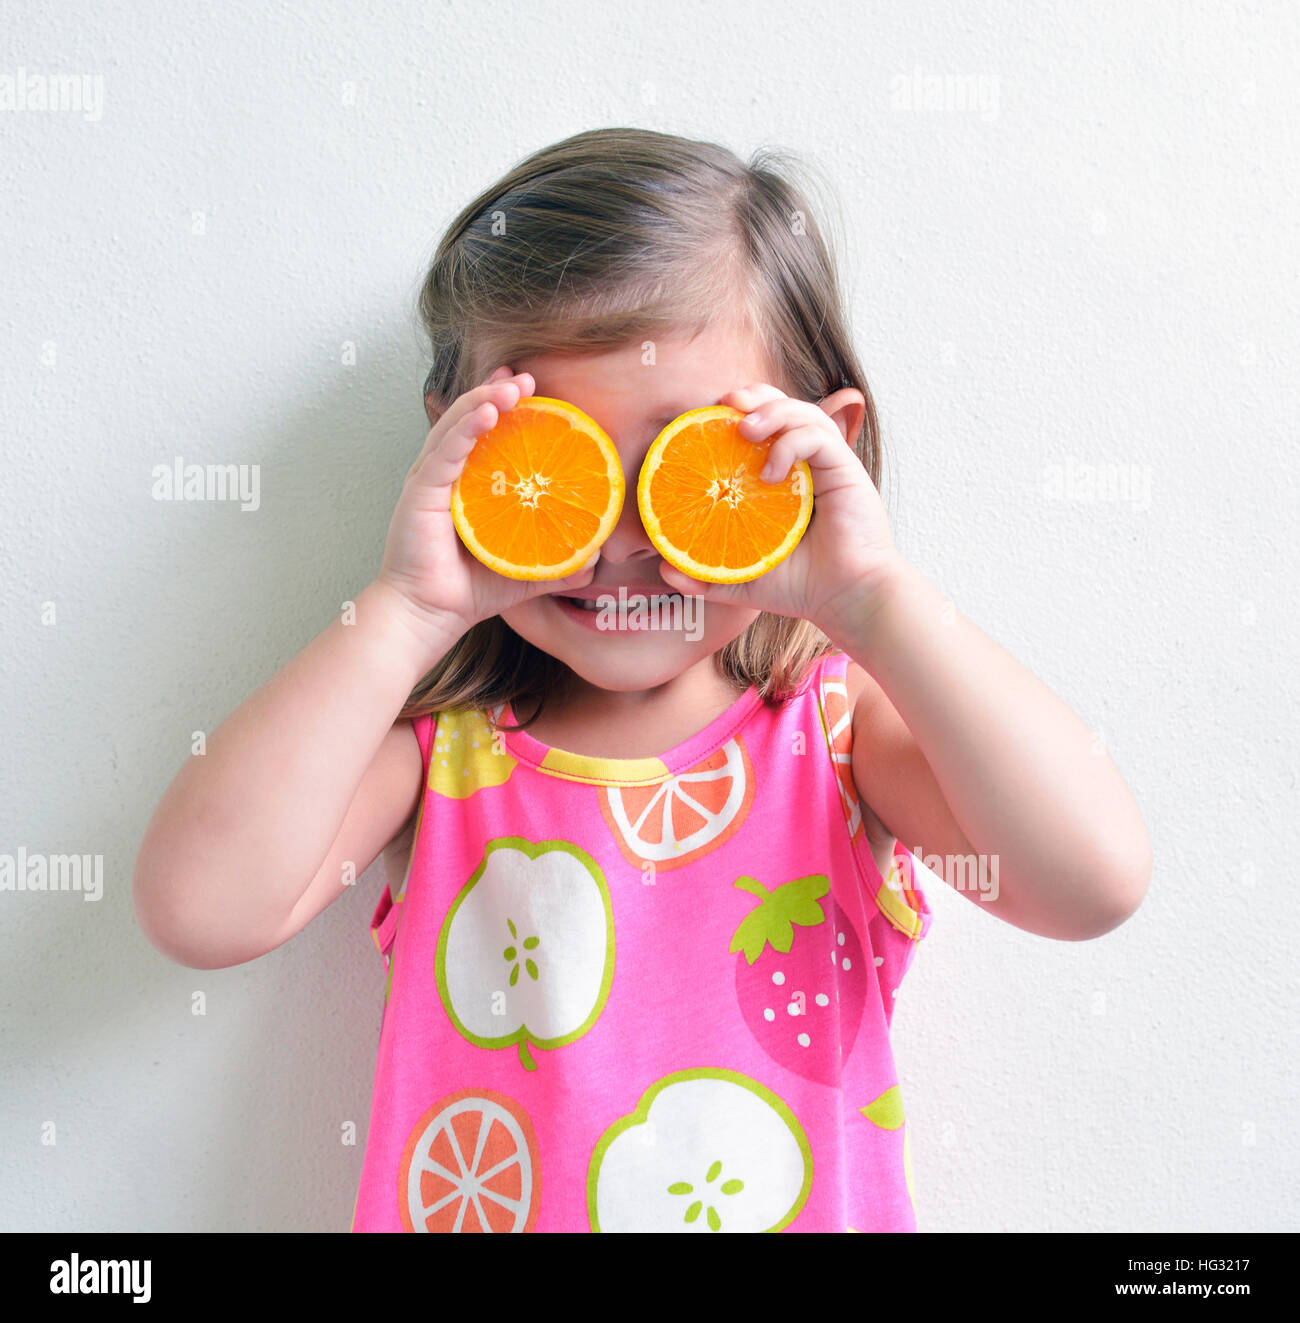 Young girl holding oranges slices over eyes - Stock Image